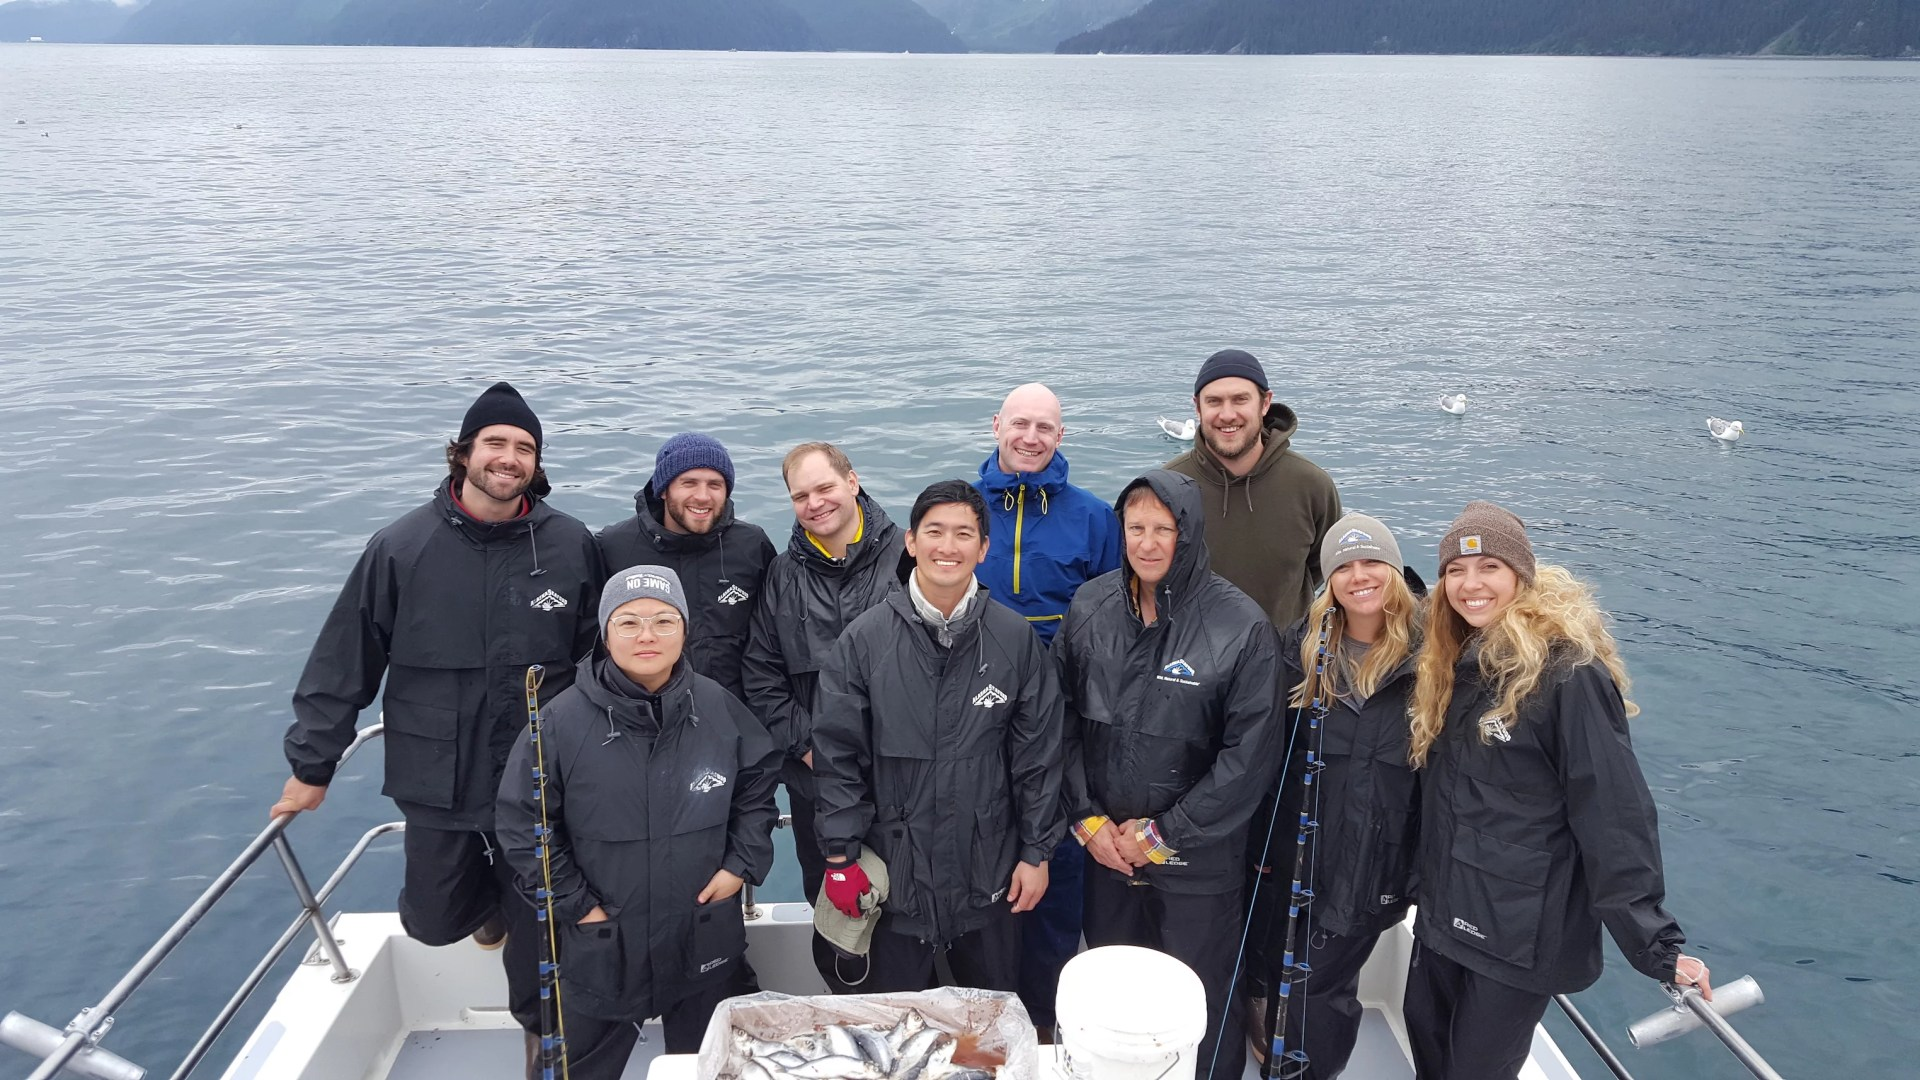 The crew on board the boat